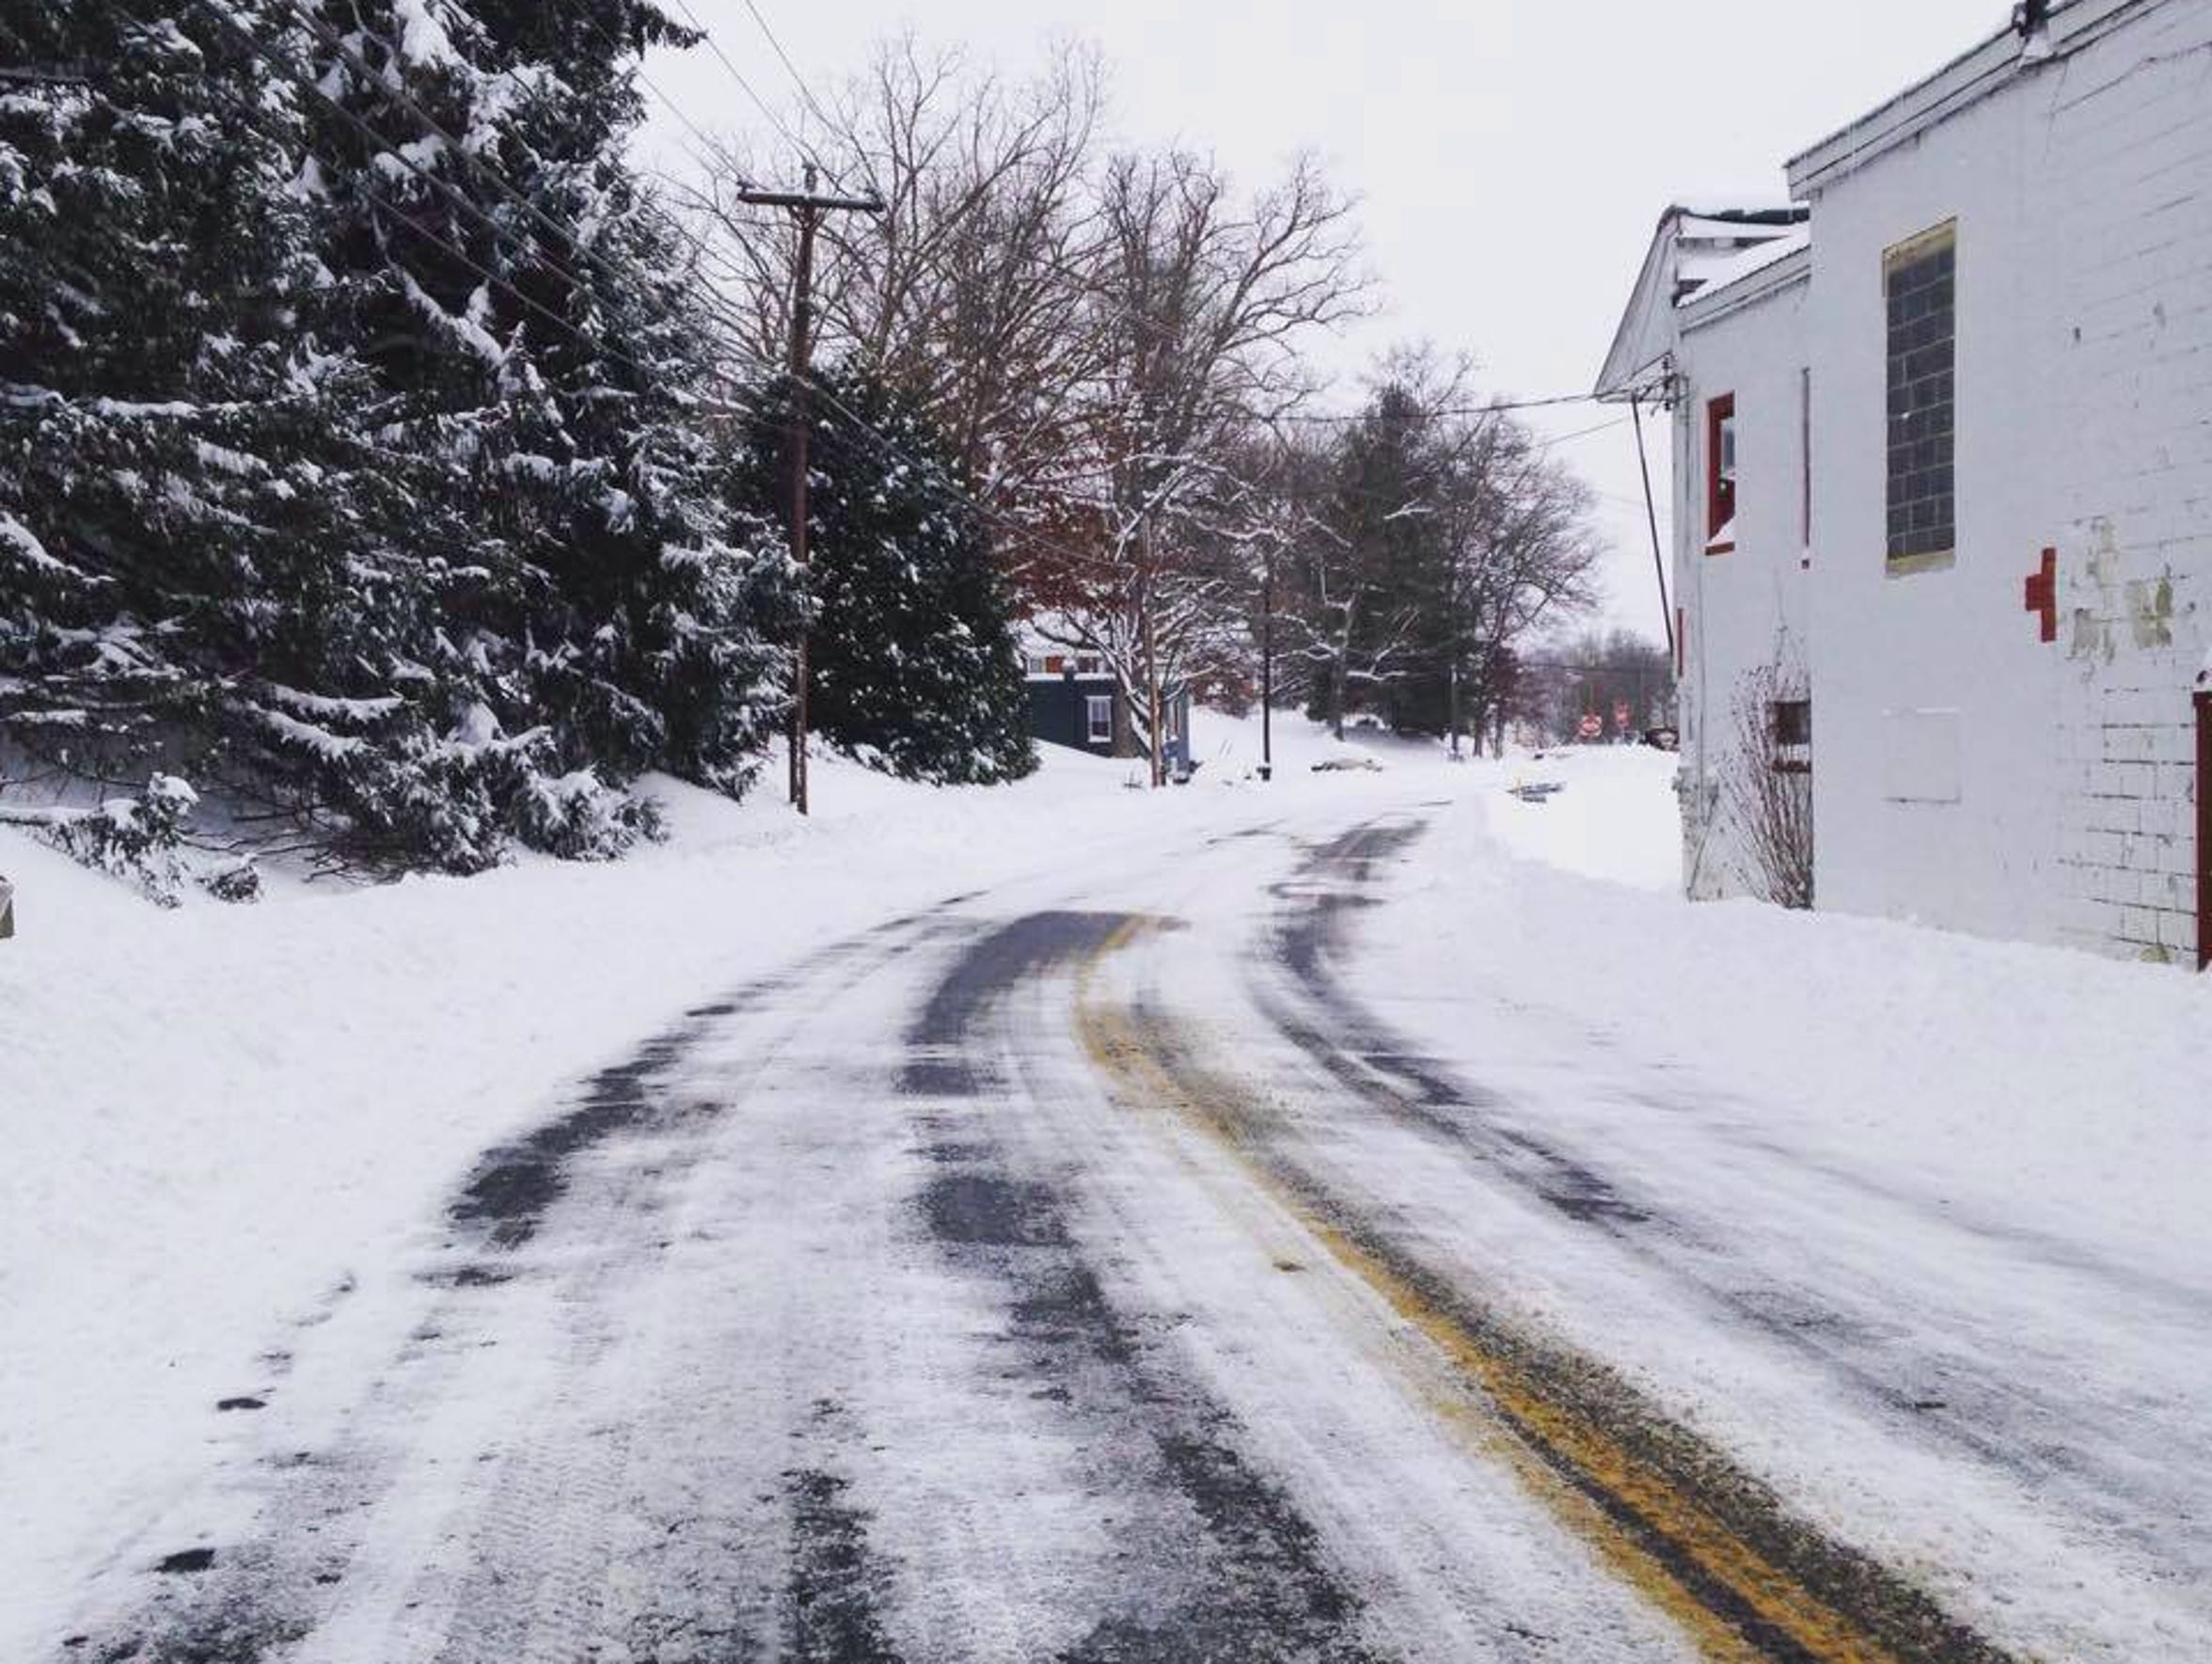 A snowy road in Staunton during Winter Storm Jonas